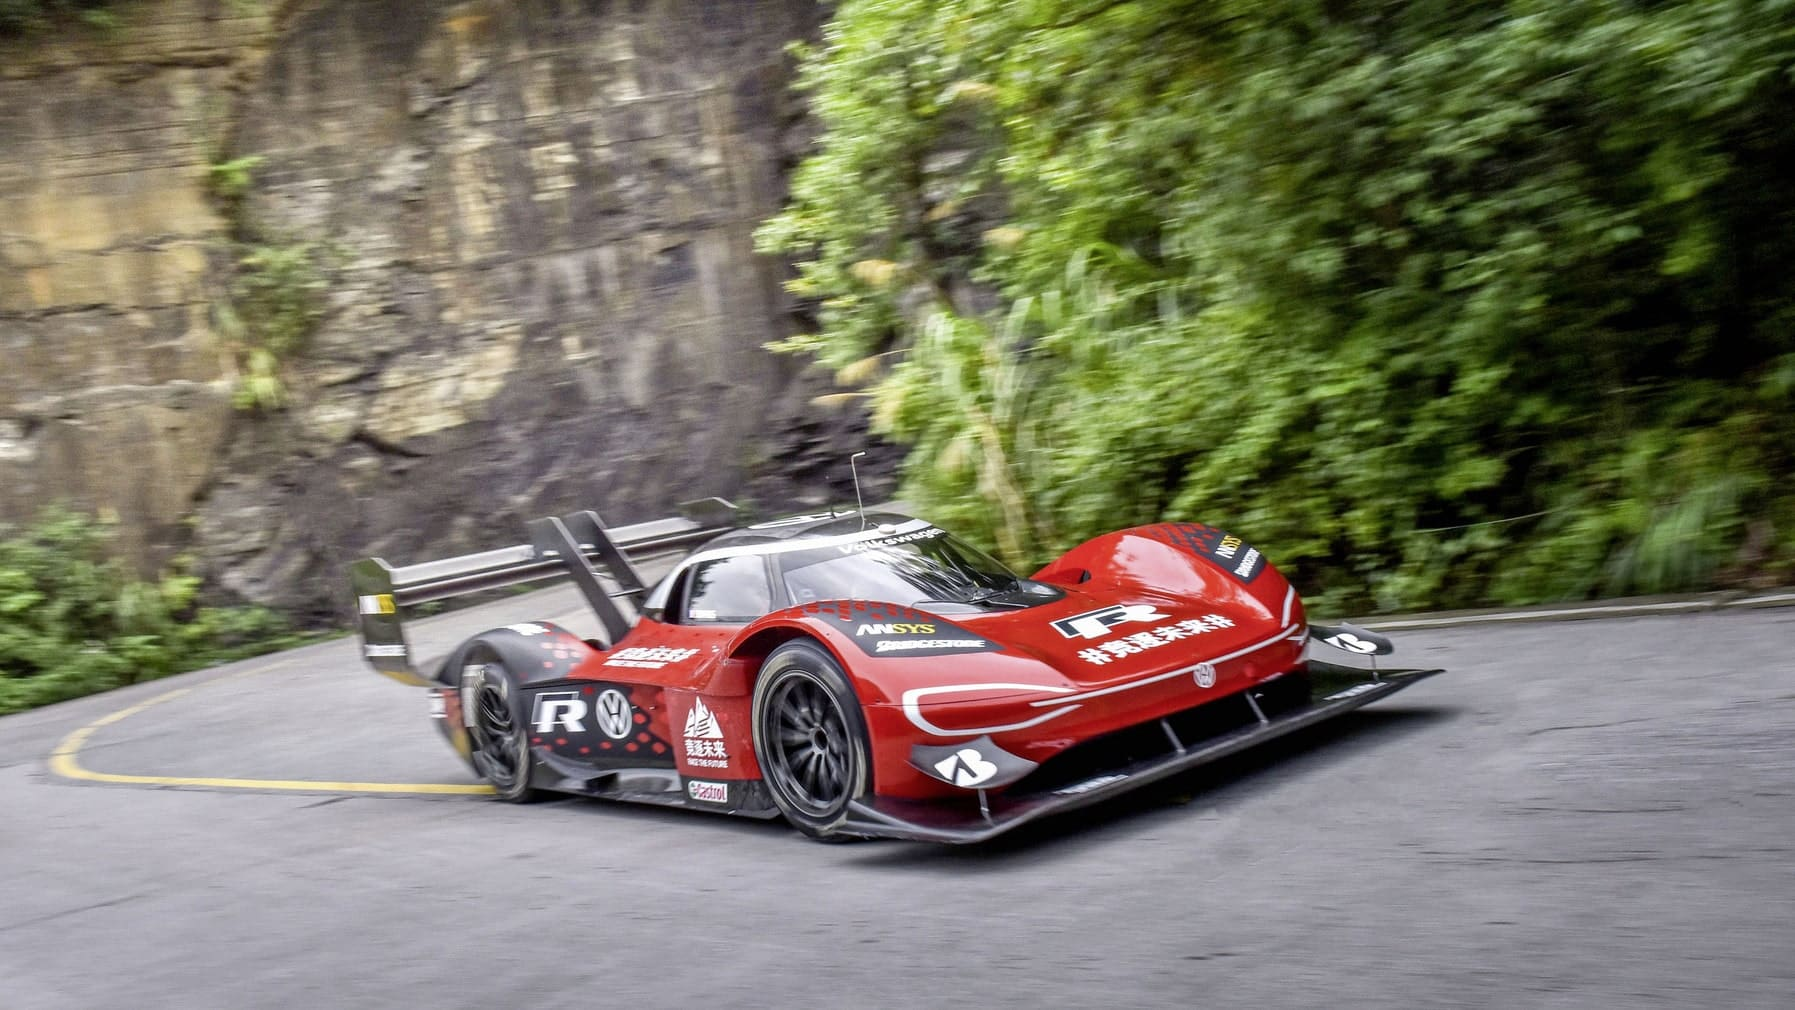 Volkswagen Sets First Record on Tianmen Mountain with Volkswagen ID.R